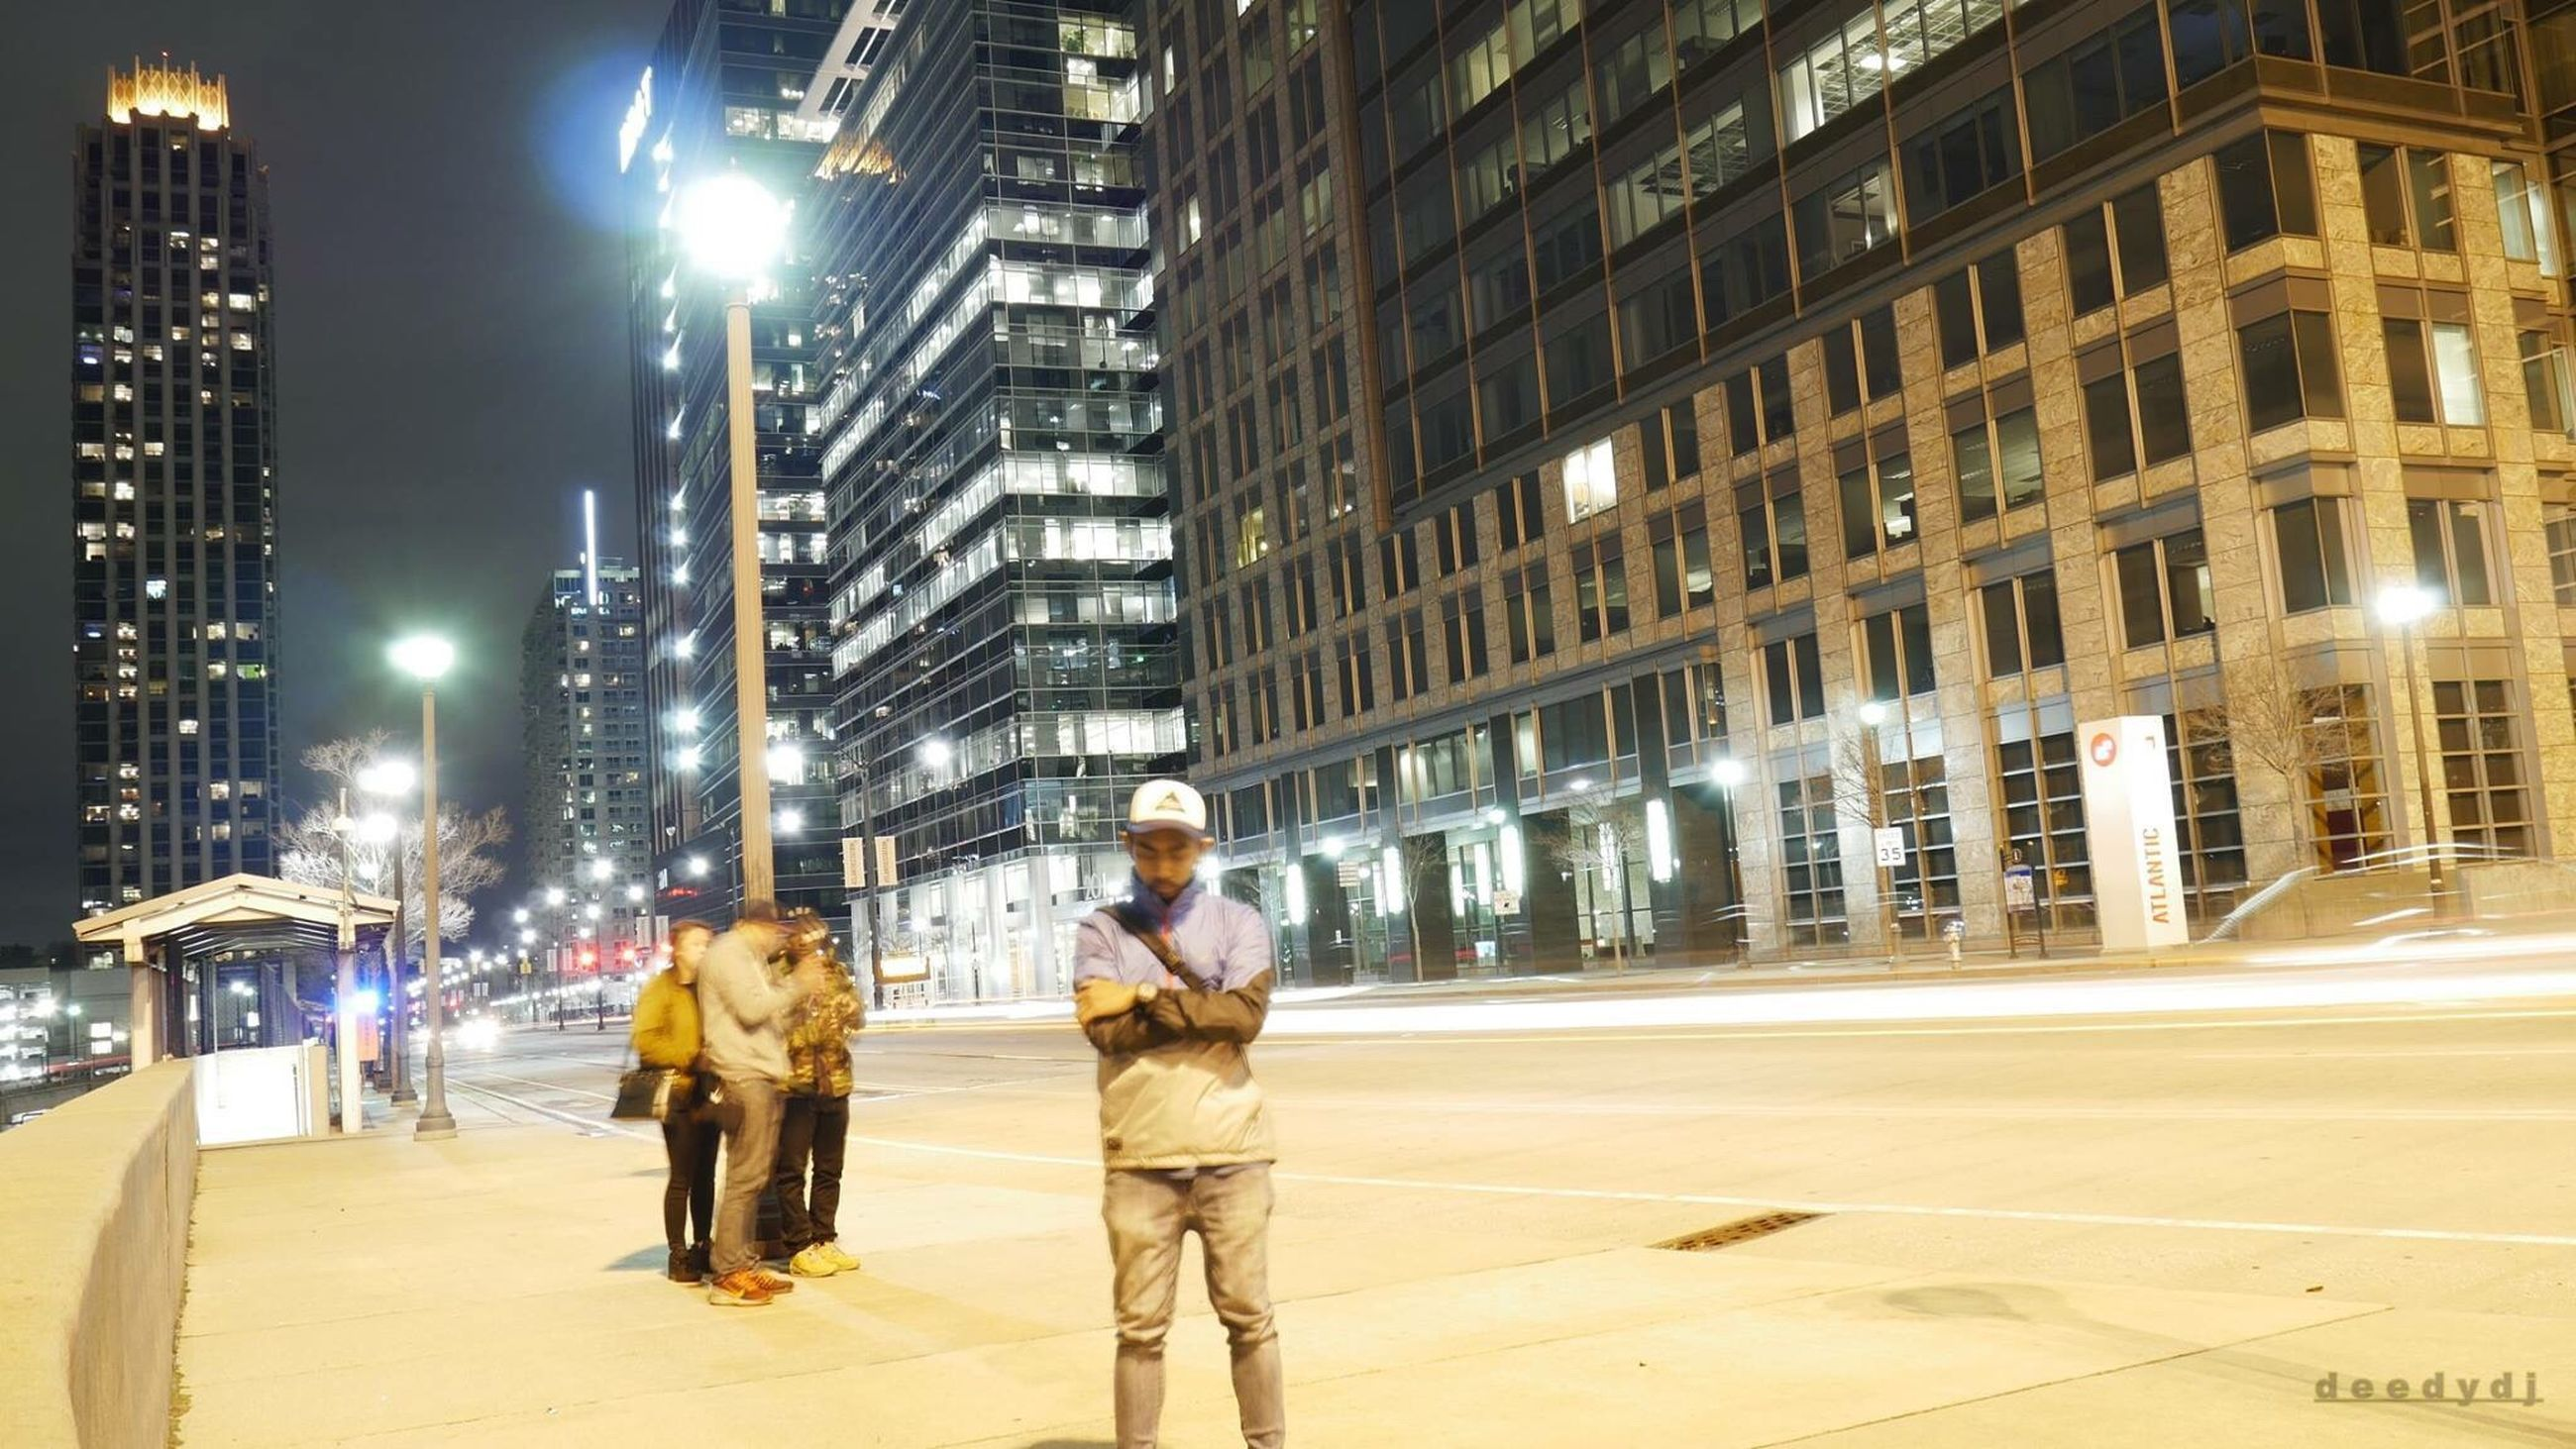 night, city, illuminated, two people, street, winter, full length, city life, adults only, travel, walking, people, only men, outdoors, travel destinations, built structure, adult, togetherness, men, working, young adult, architecture, teamwork